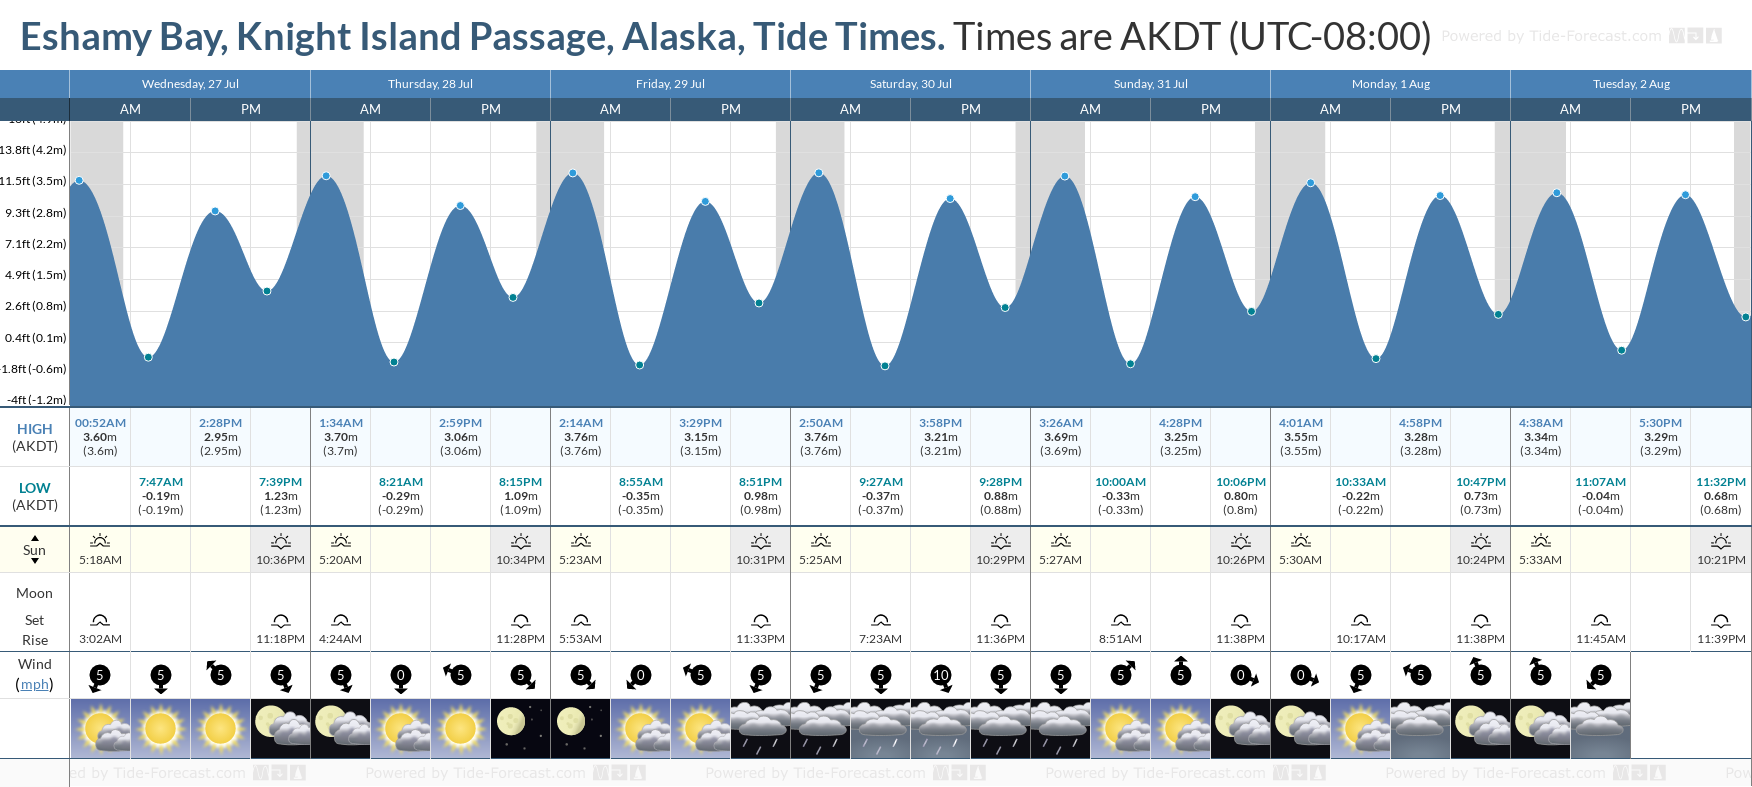 Eshamy Bay, Knight Island Passage, Alaska Tide Chart including high and low tide tide times for the next 7 days